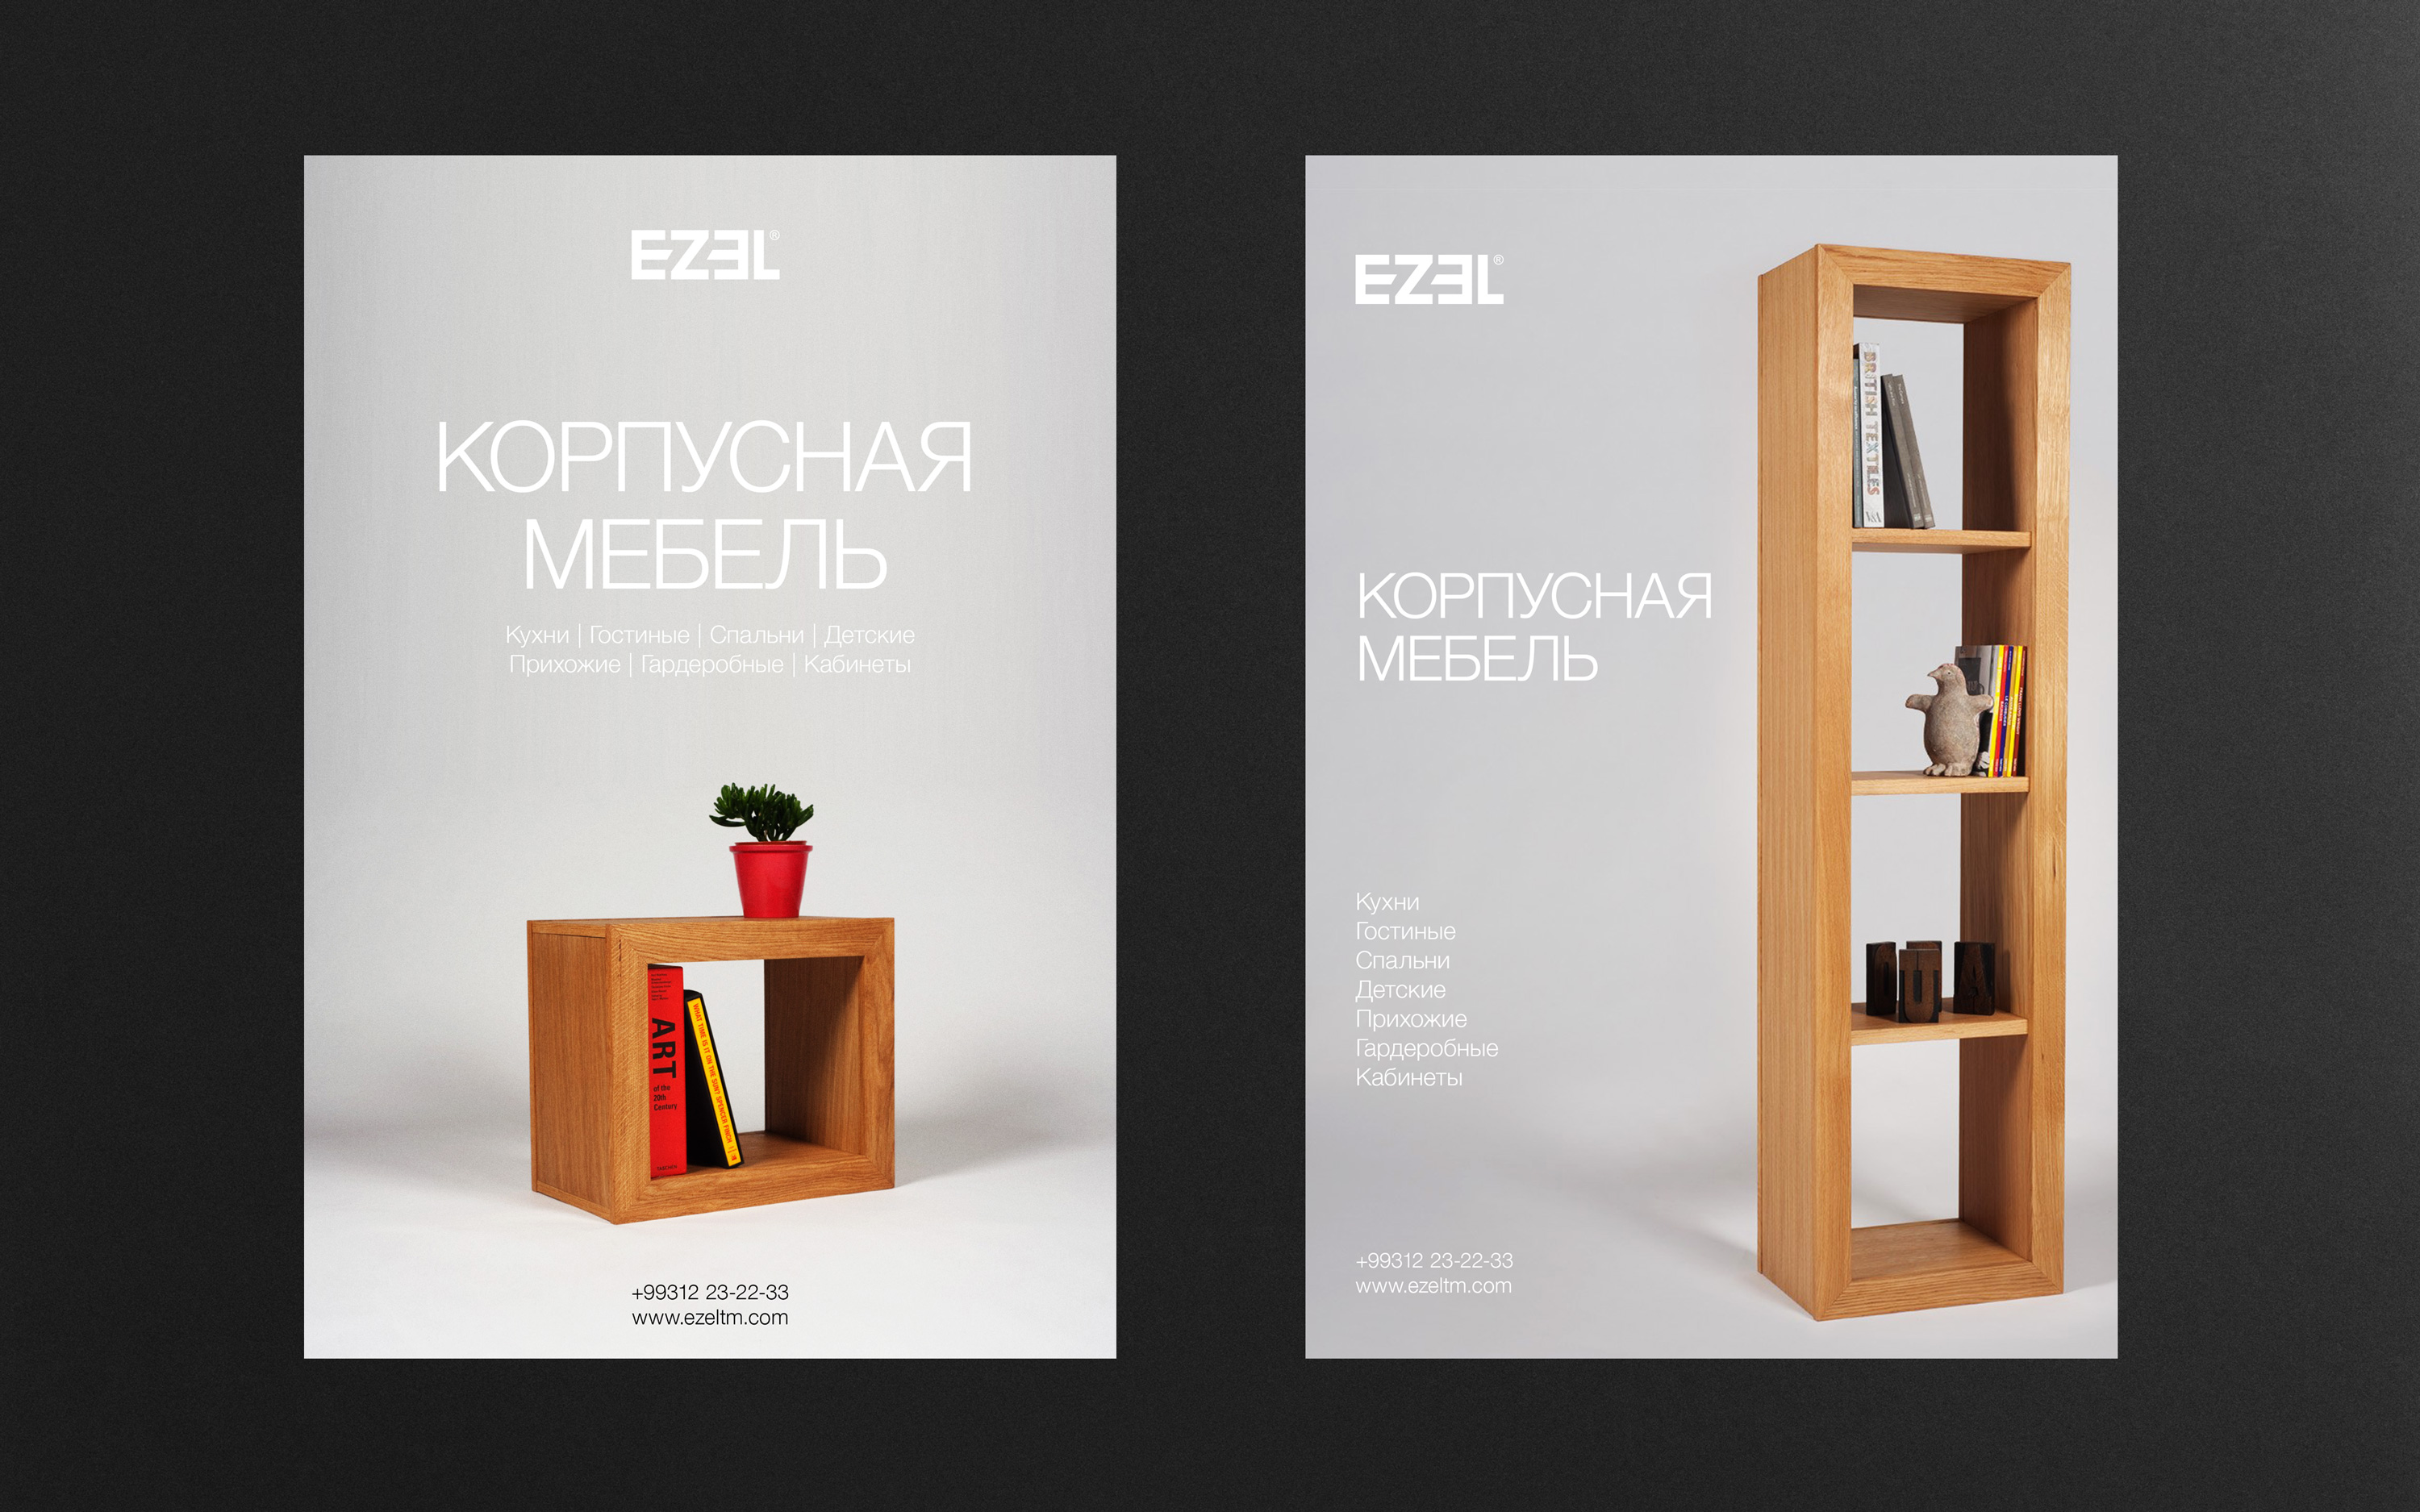 Ezel. Brand identity for a furniture manufacturer